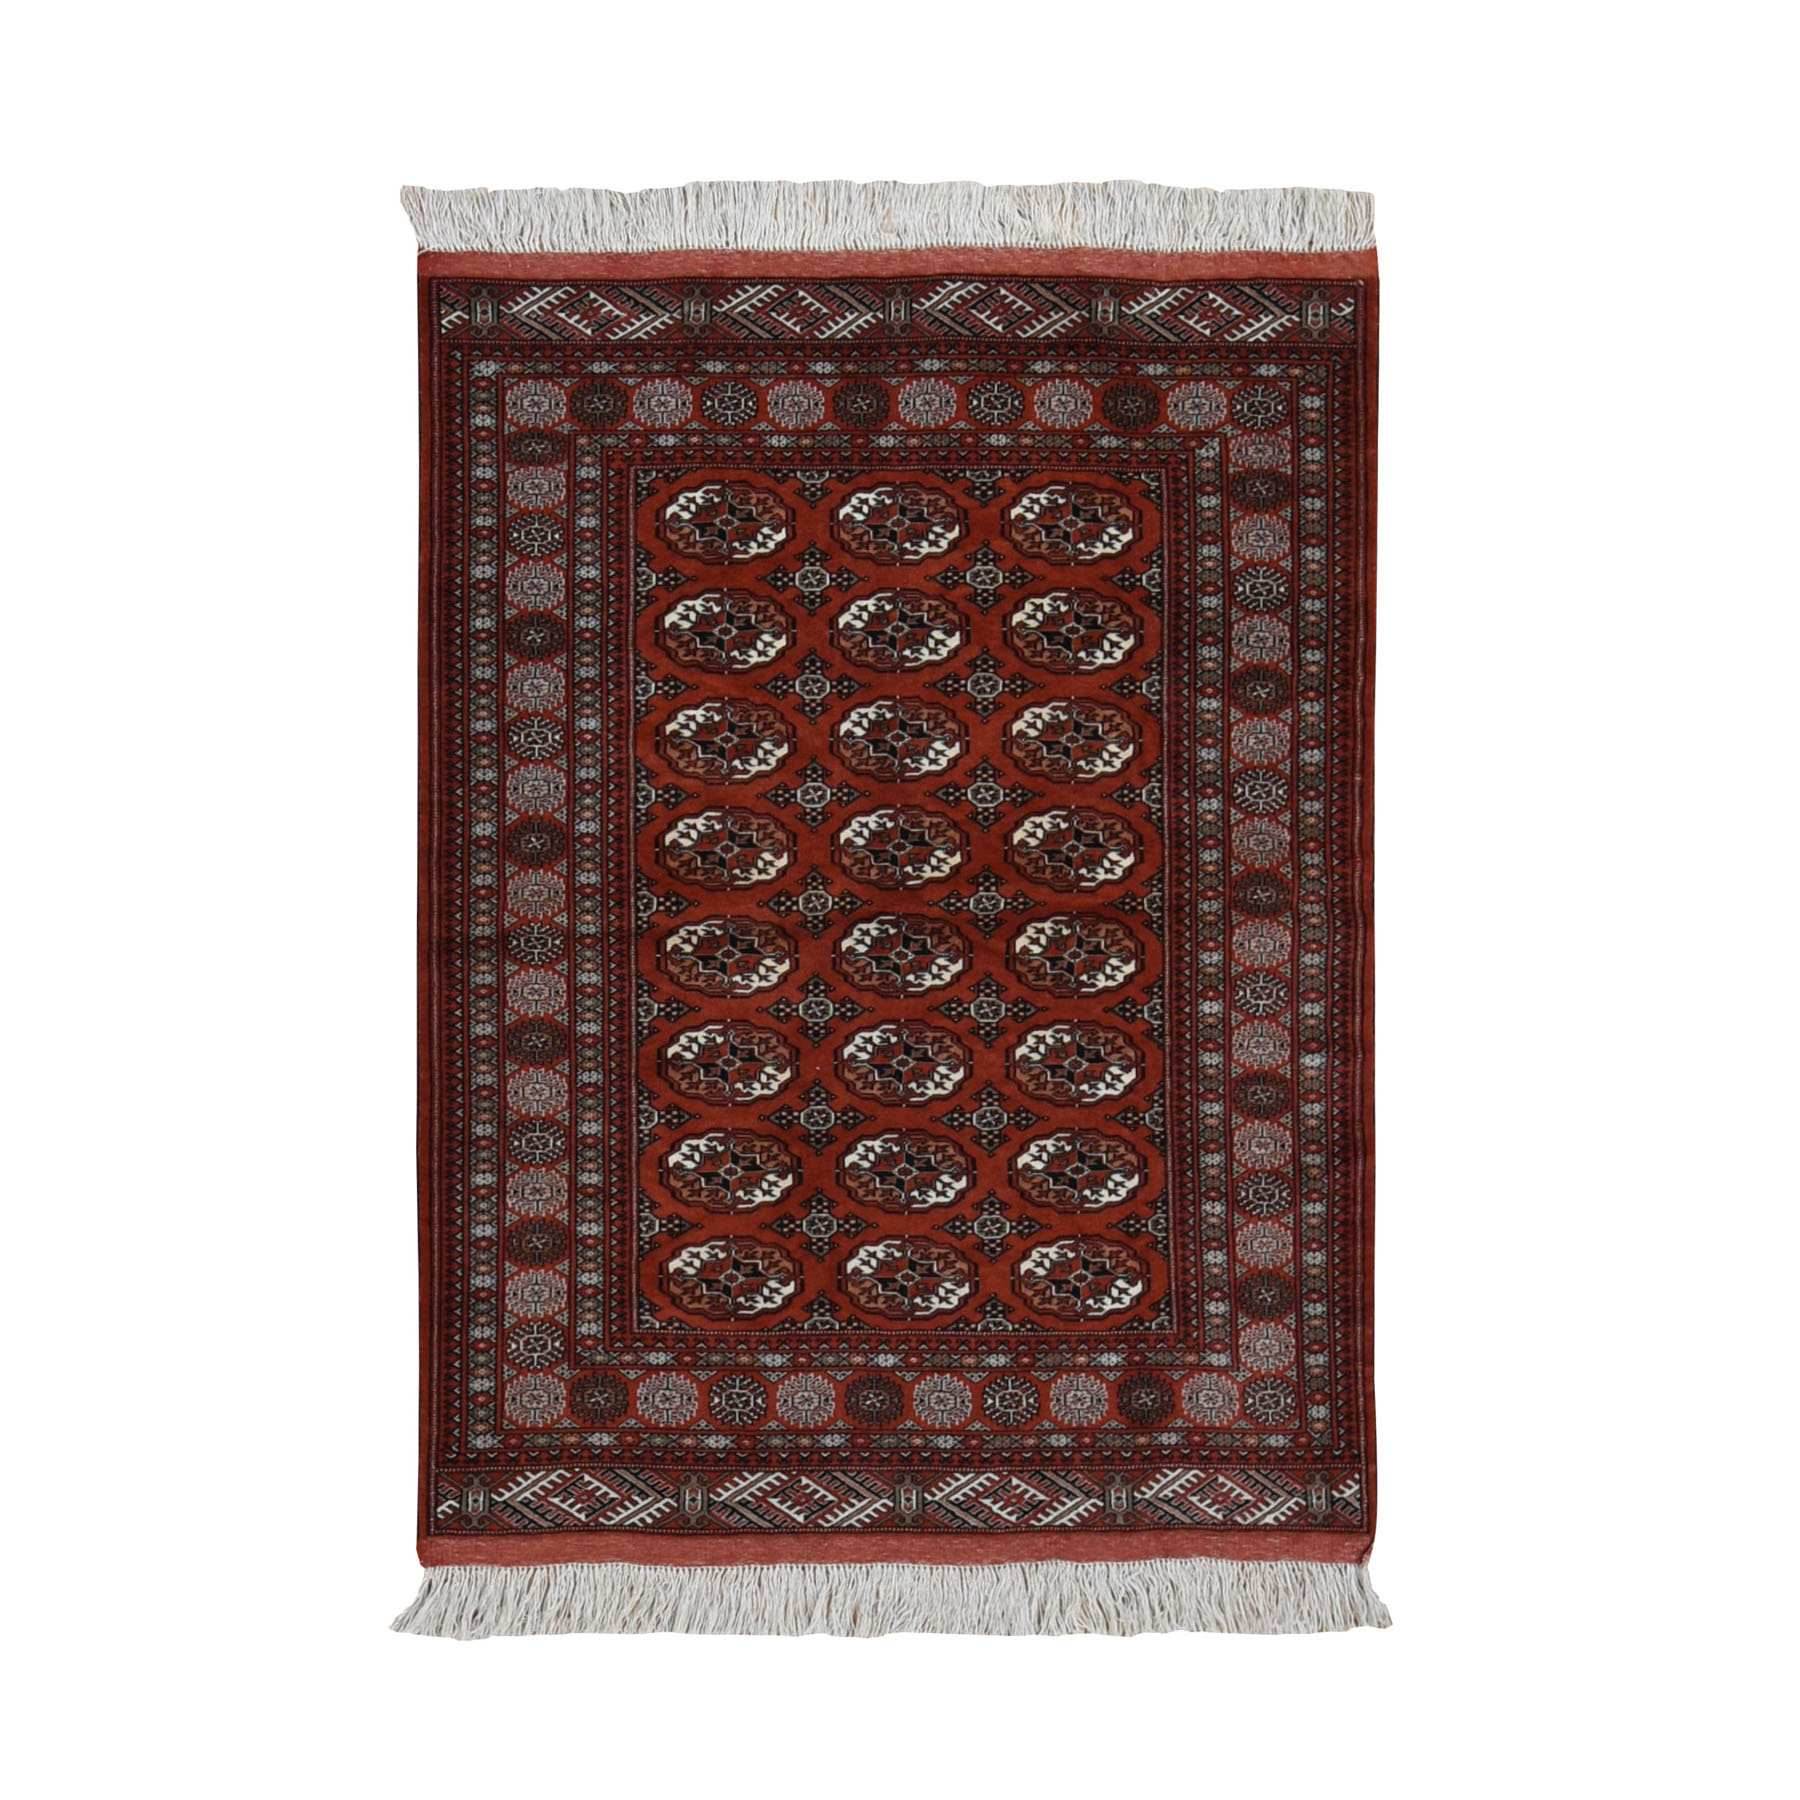 "4'4""x5'7"" Rust Red New Persian Turkoman Bokara Hi KPSI Pure Wool Hand Woven Oriental Rug"